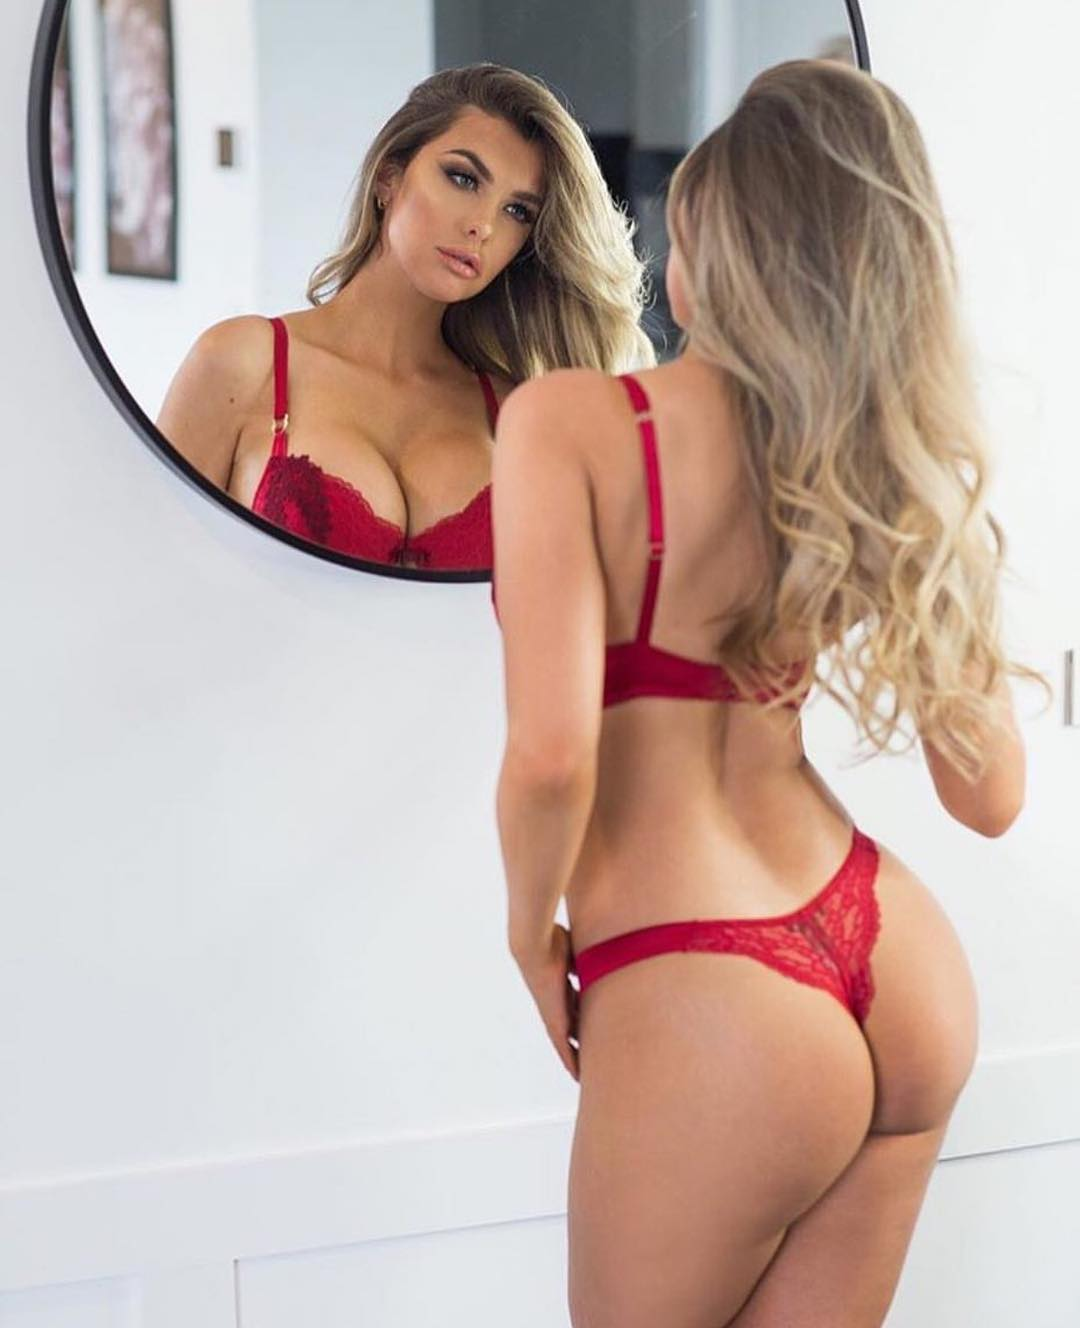 Emily Sears nude photos 2019